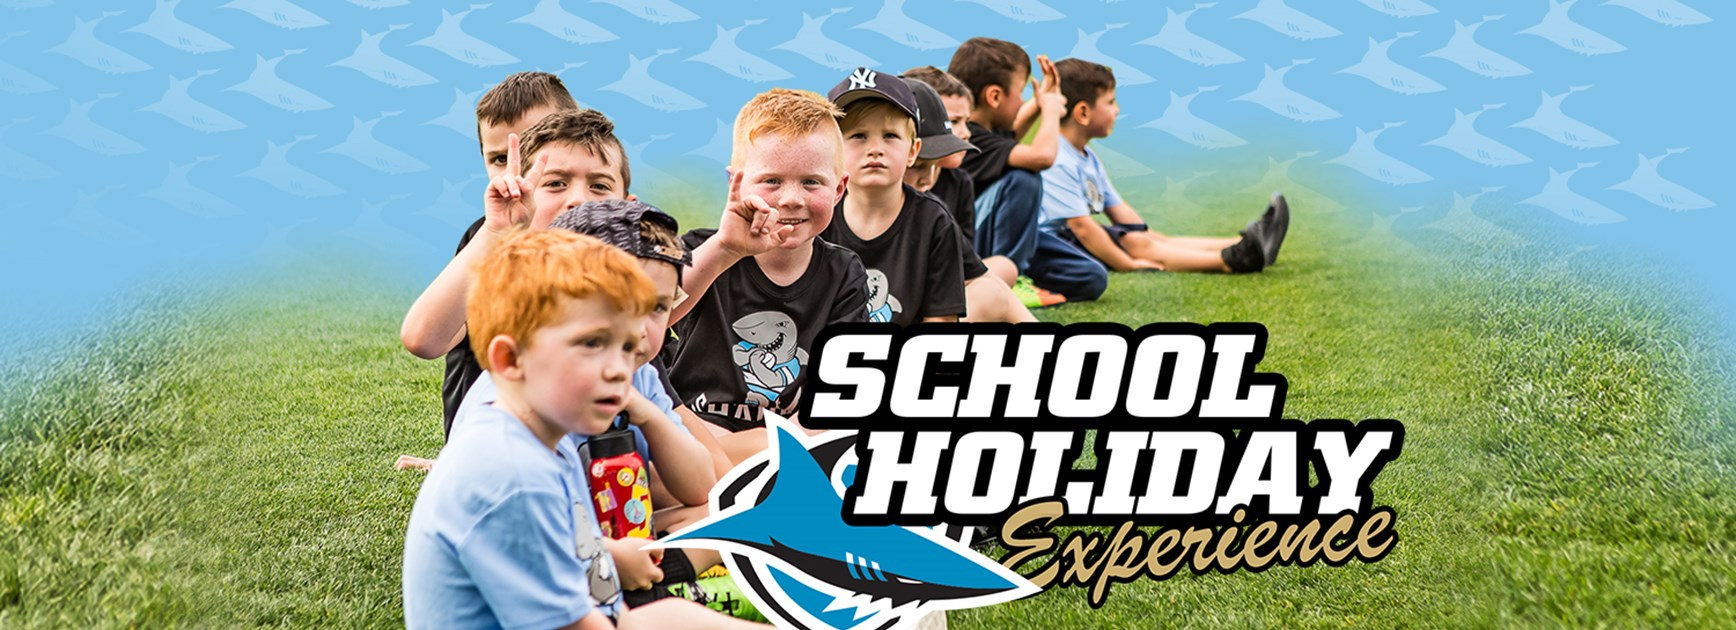 Sharks July School Holiday Experience